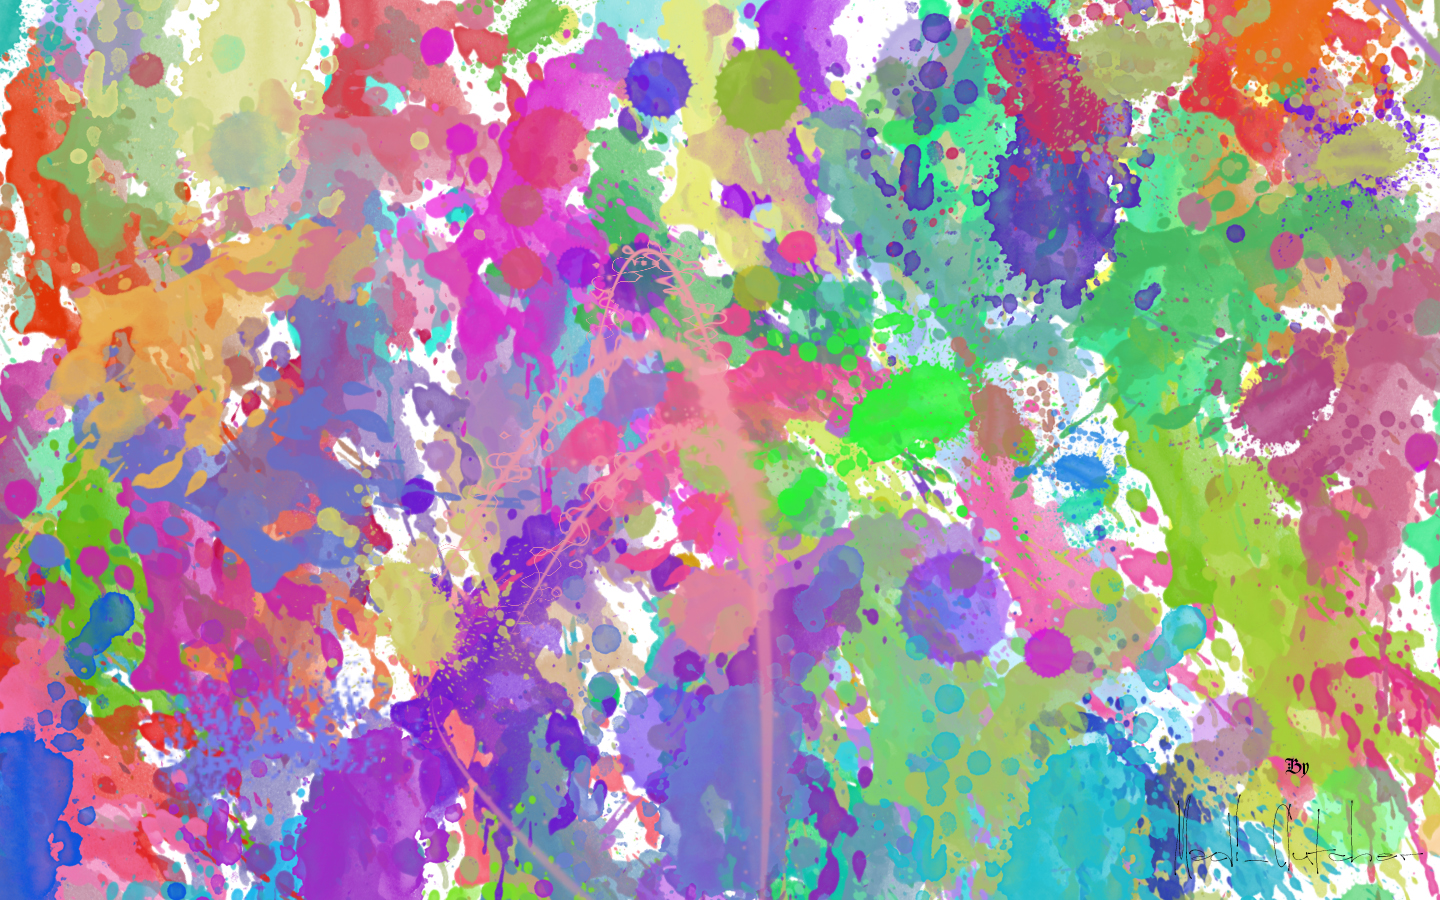 Pink And Green Paint Splotches